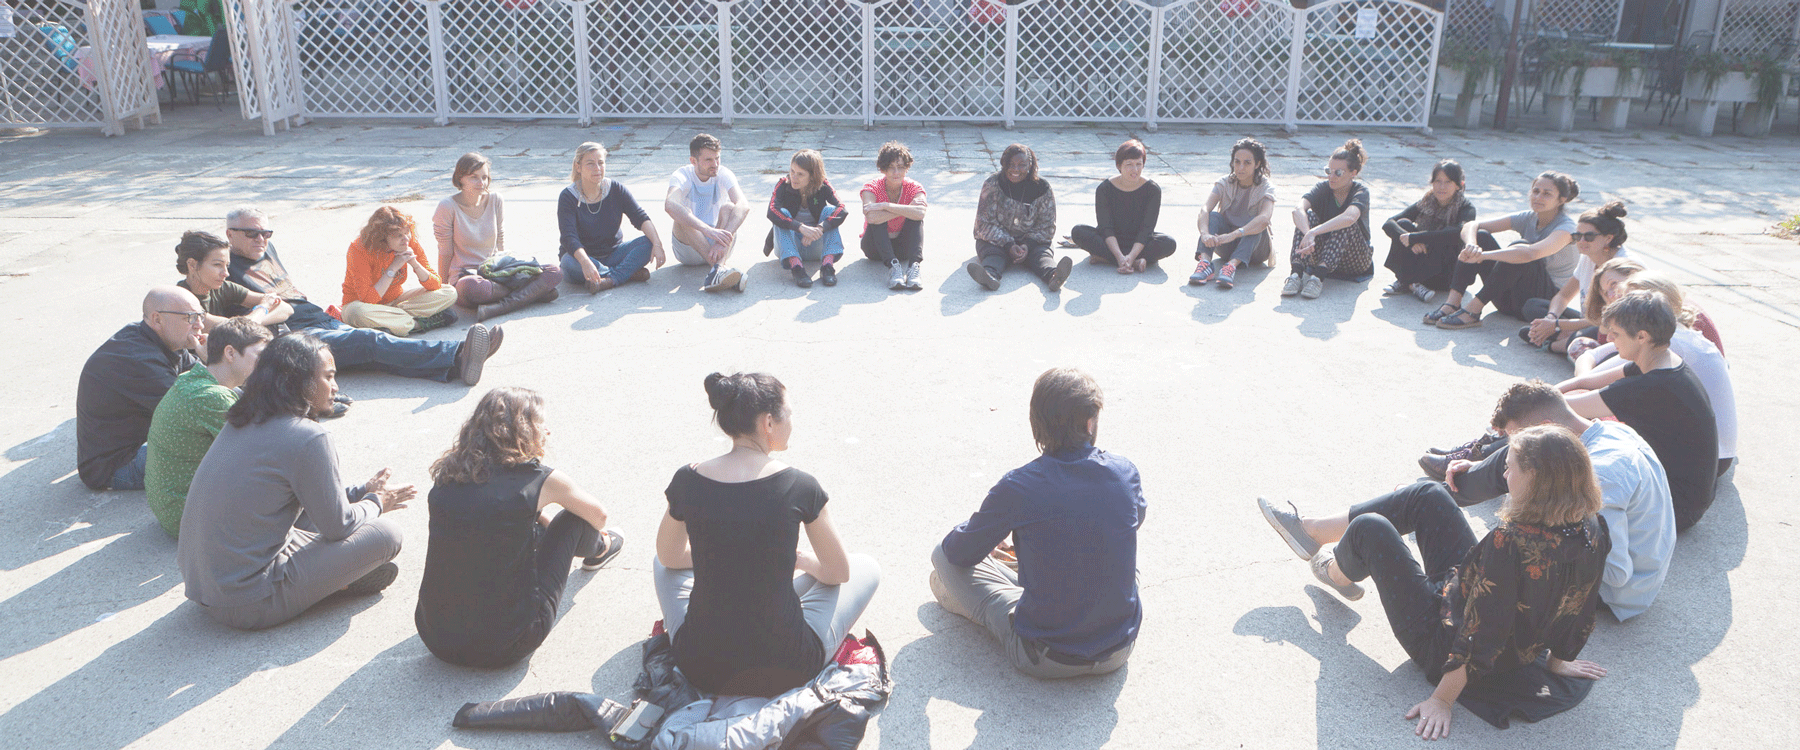 a large group sitting in a circle